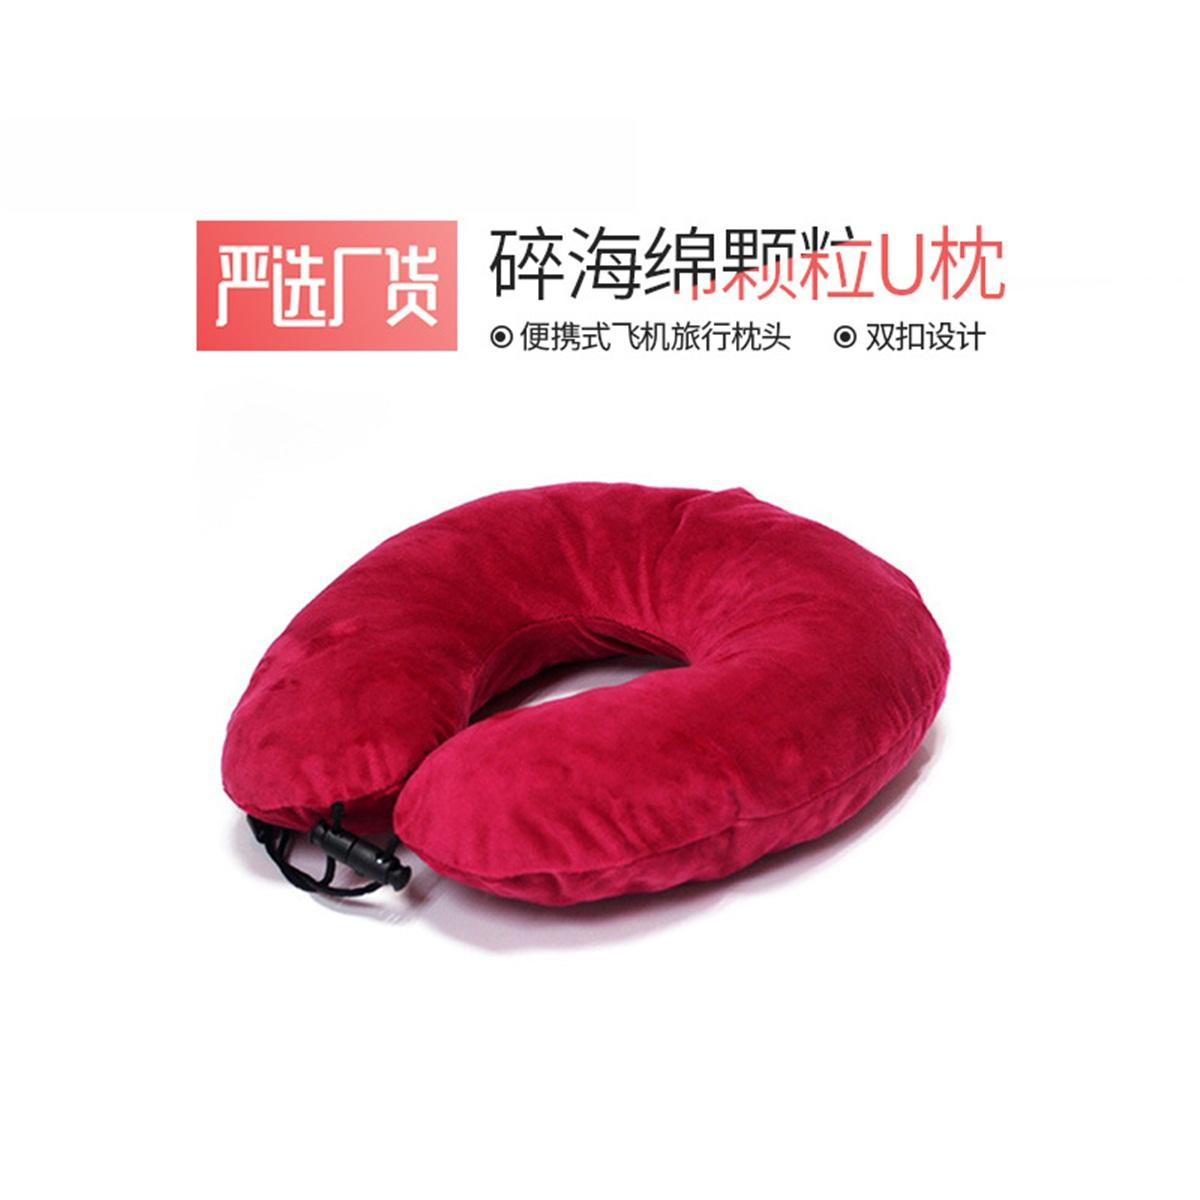 Crushed memory foam travel neck pillow for airplane Head support rest pillow 1